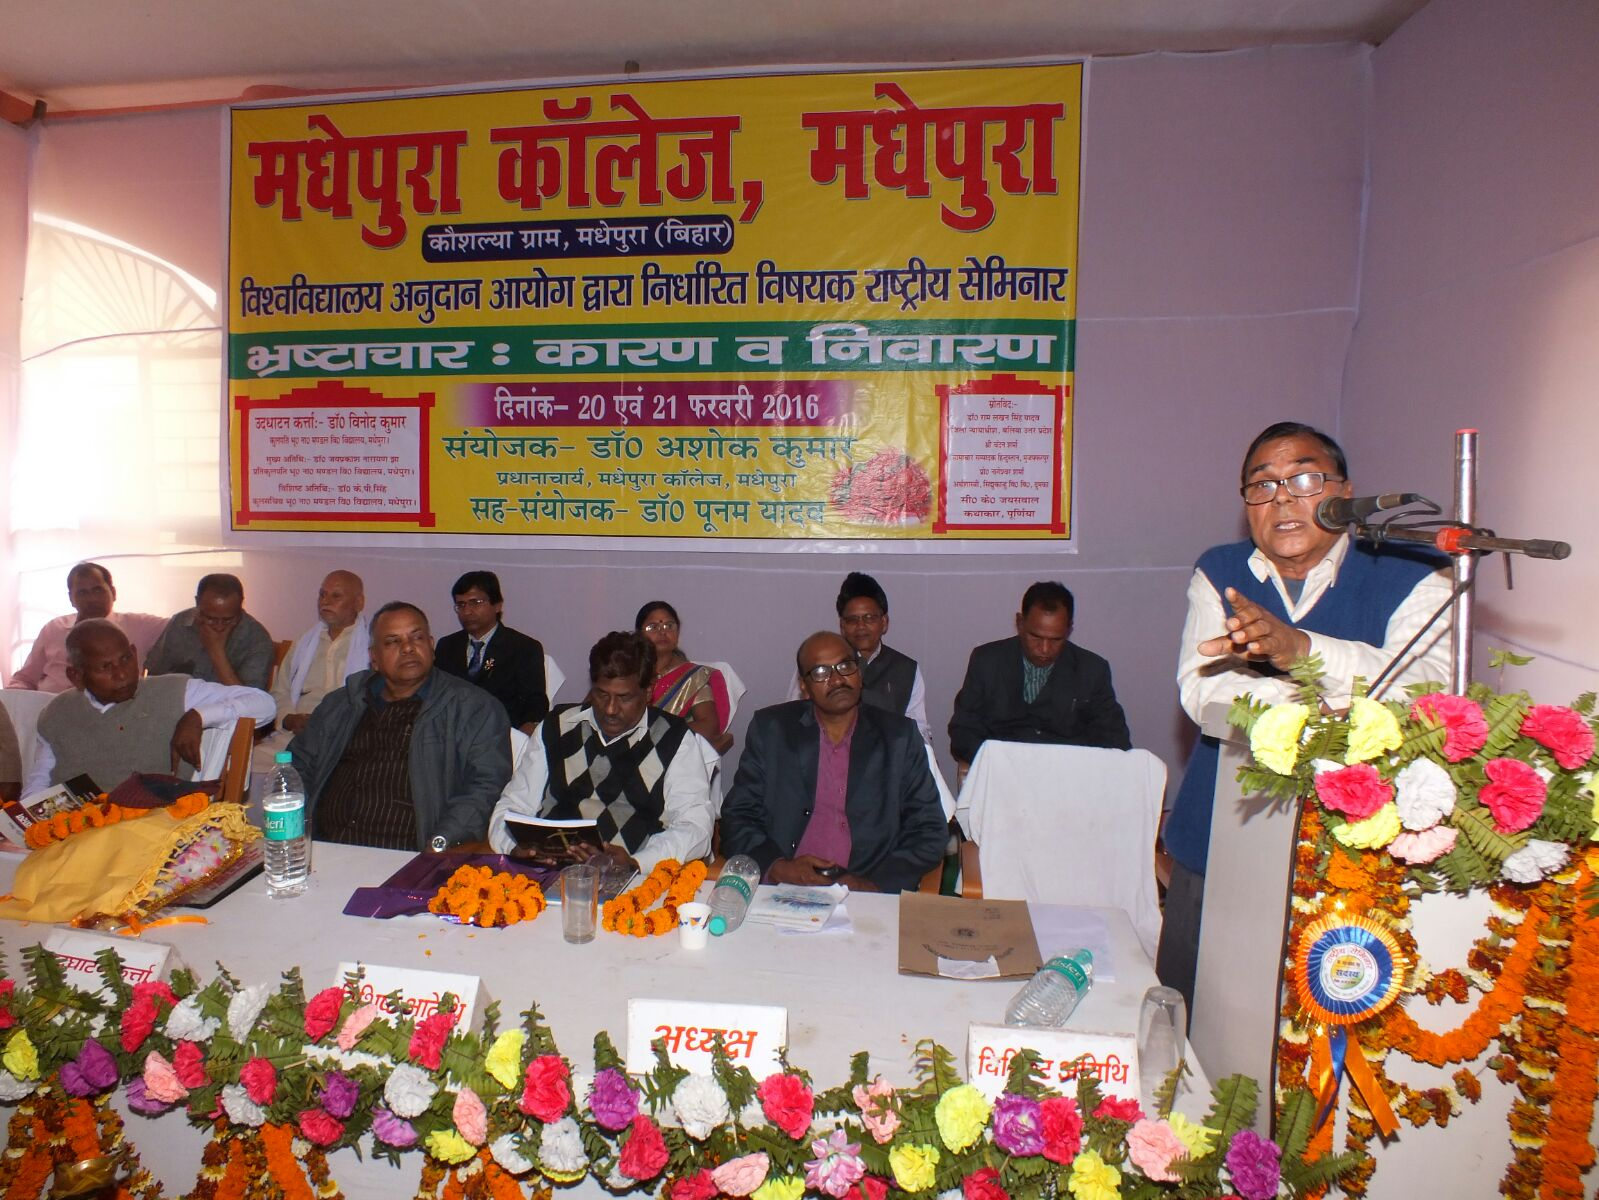 Dr.Madhepuri addressing the audience in the Seminar Hall .